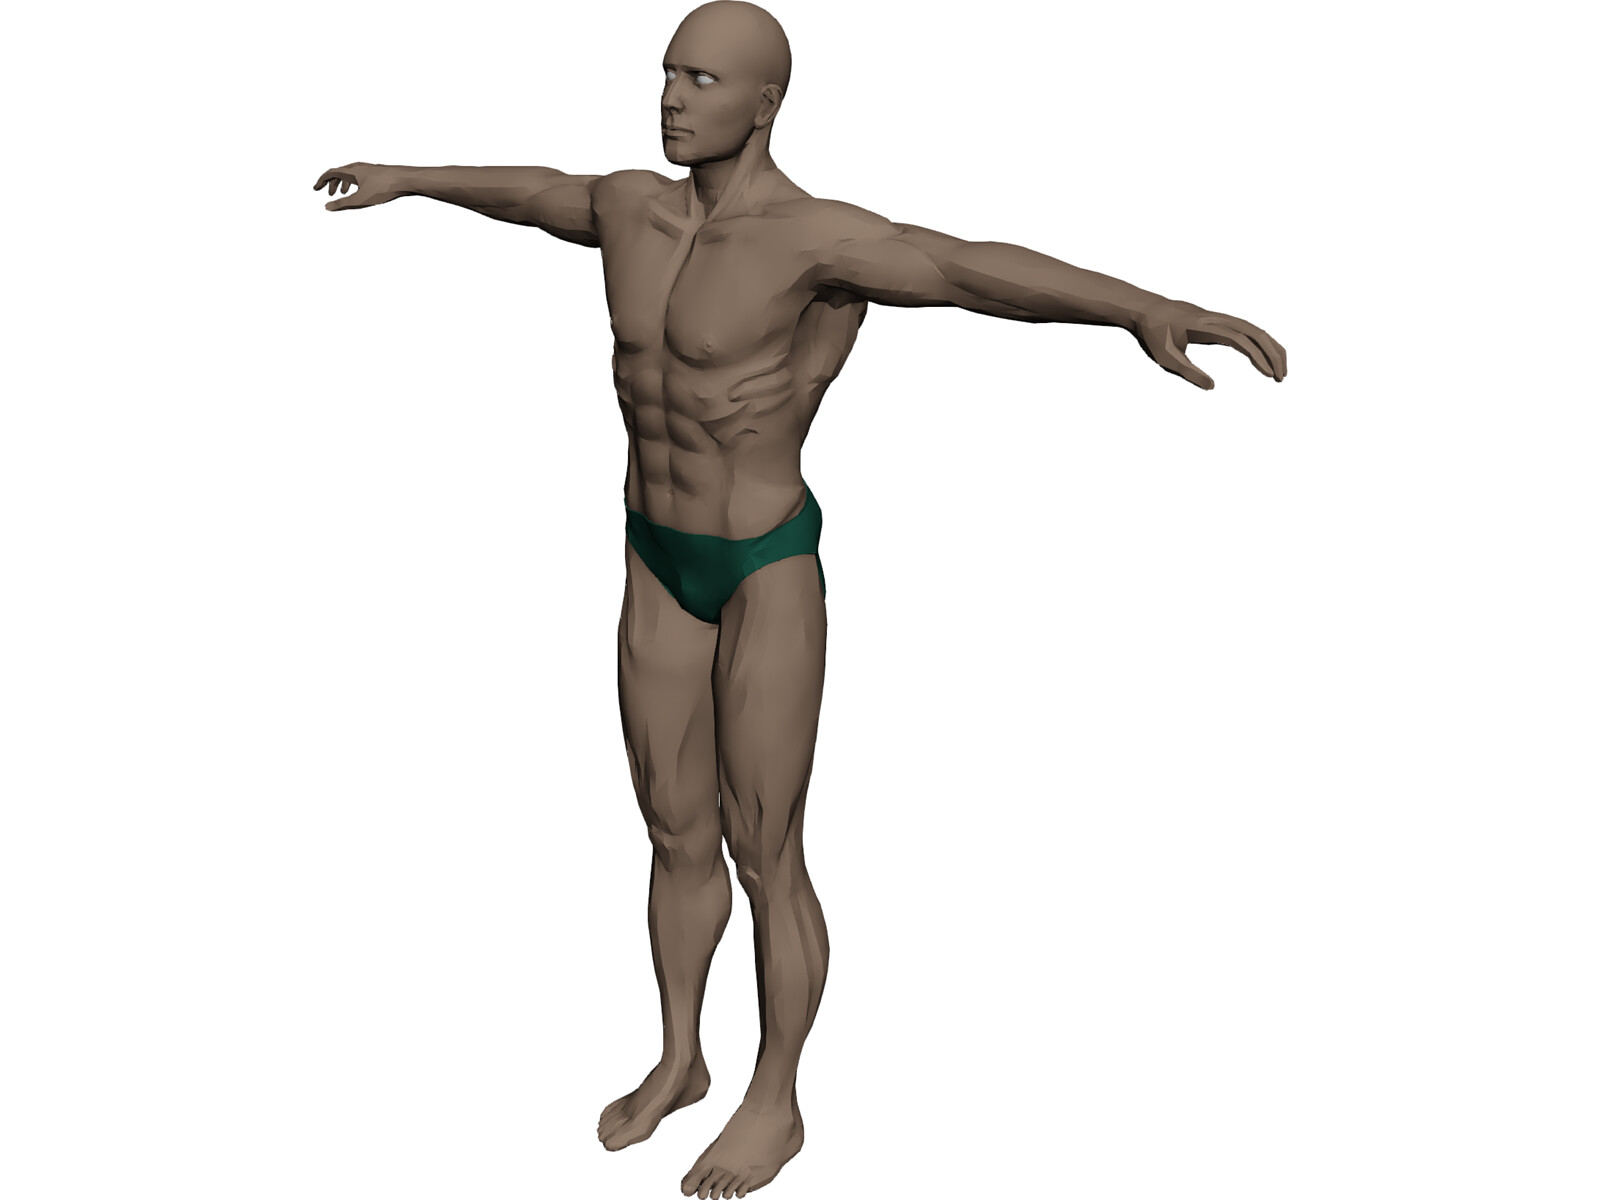 Swimmer Athlete 3D Model